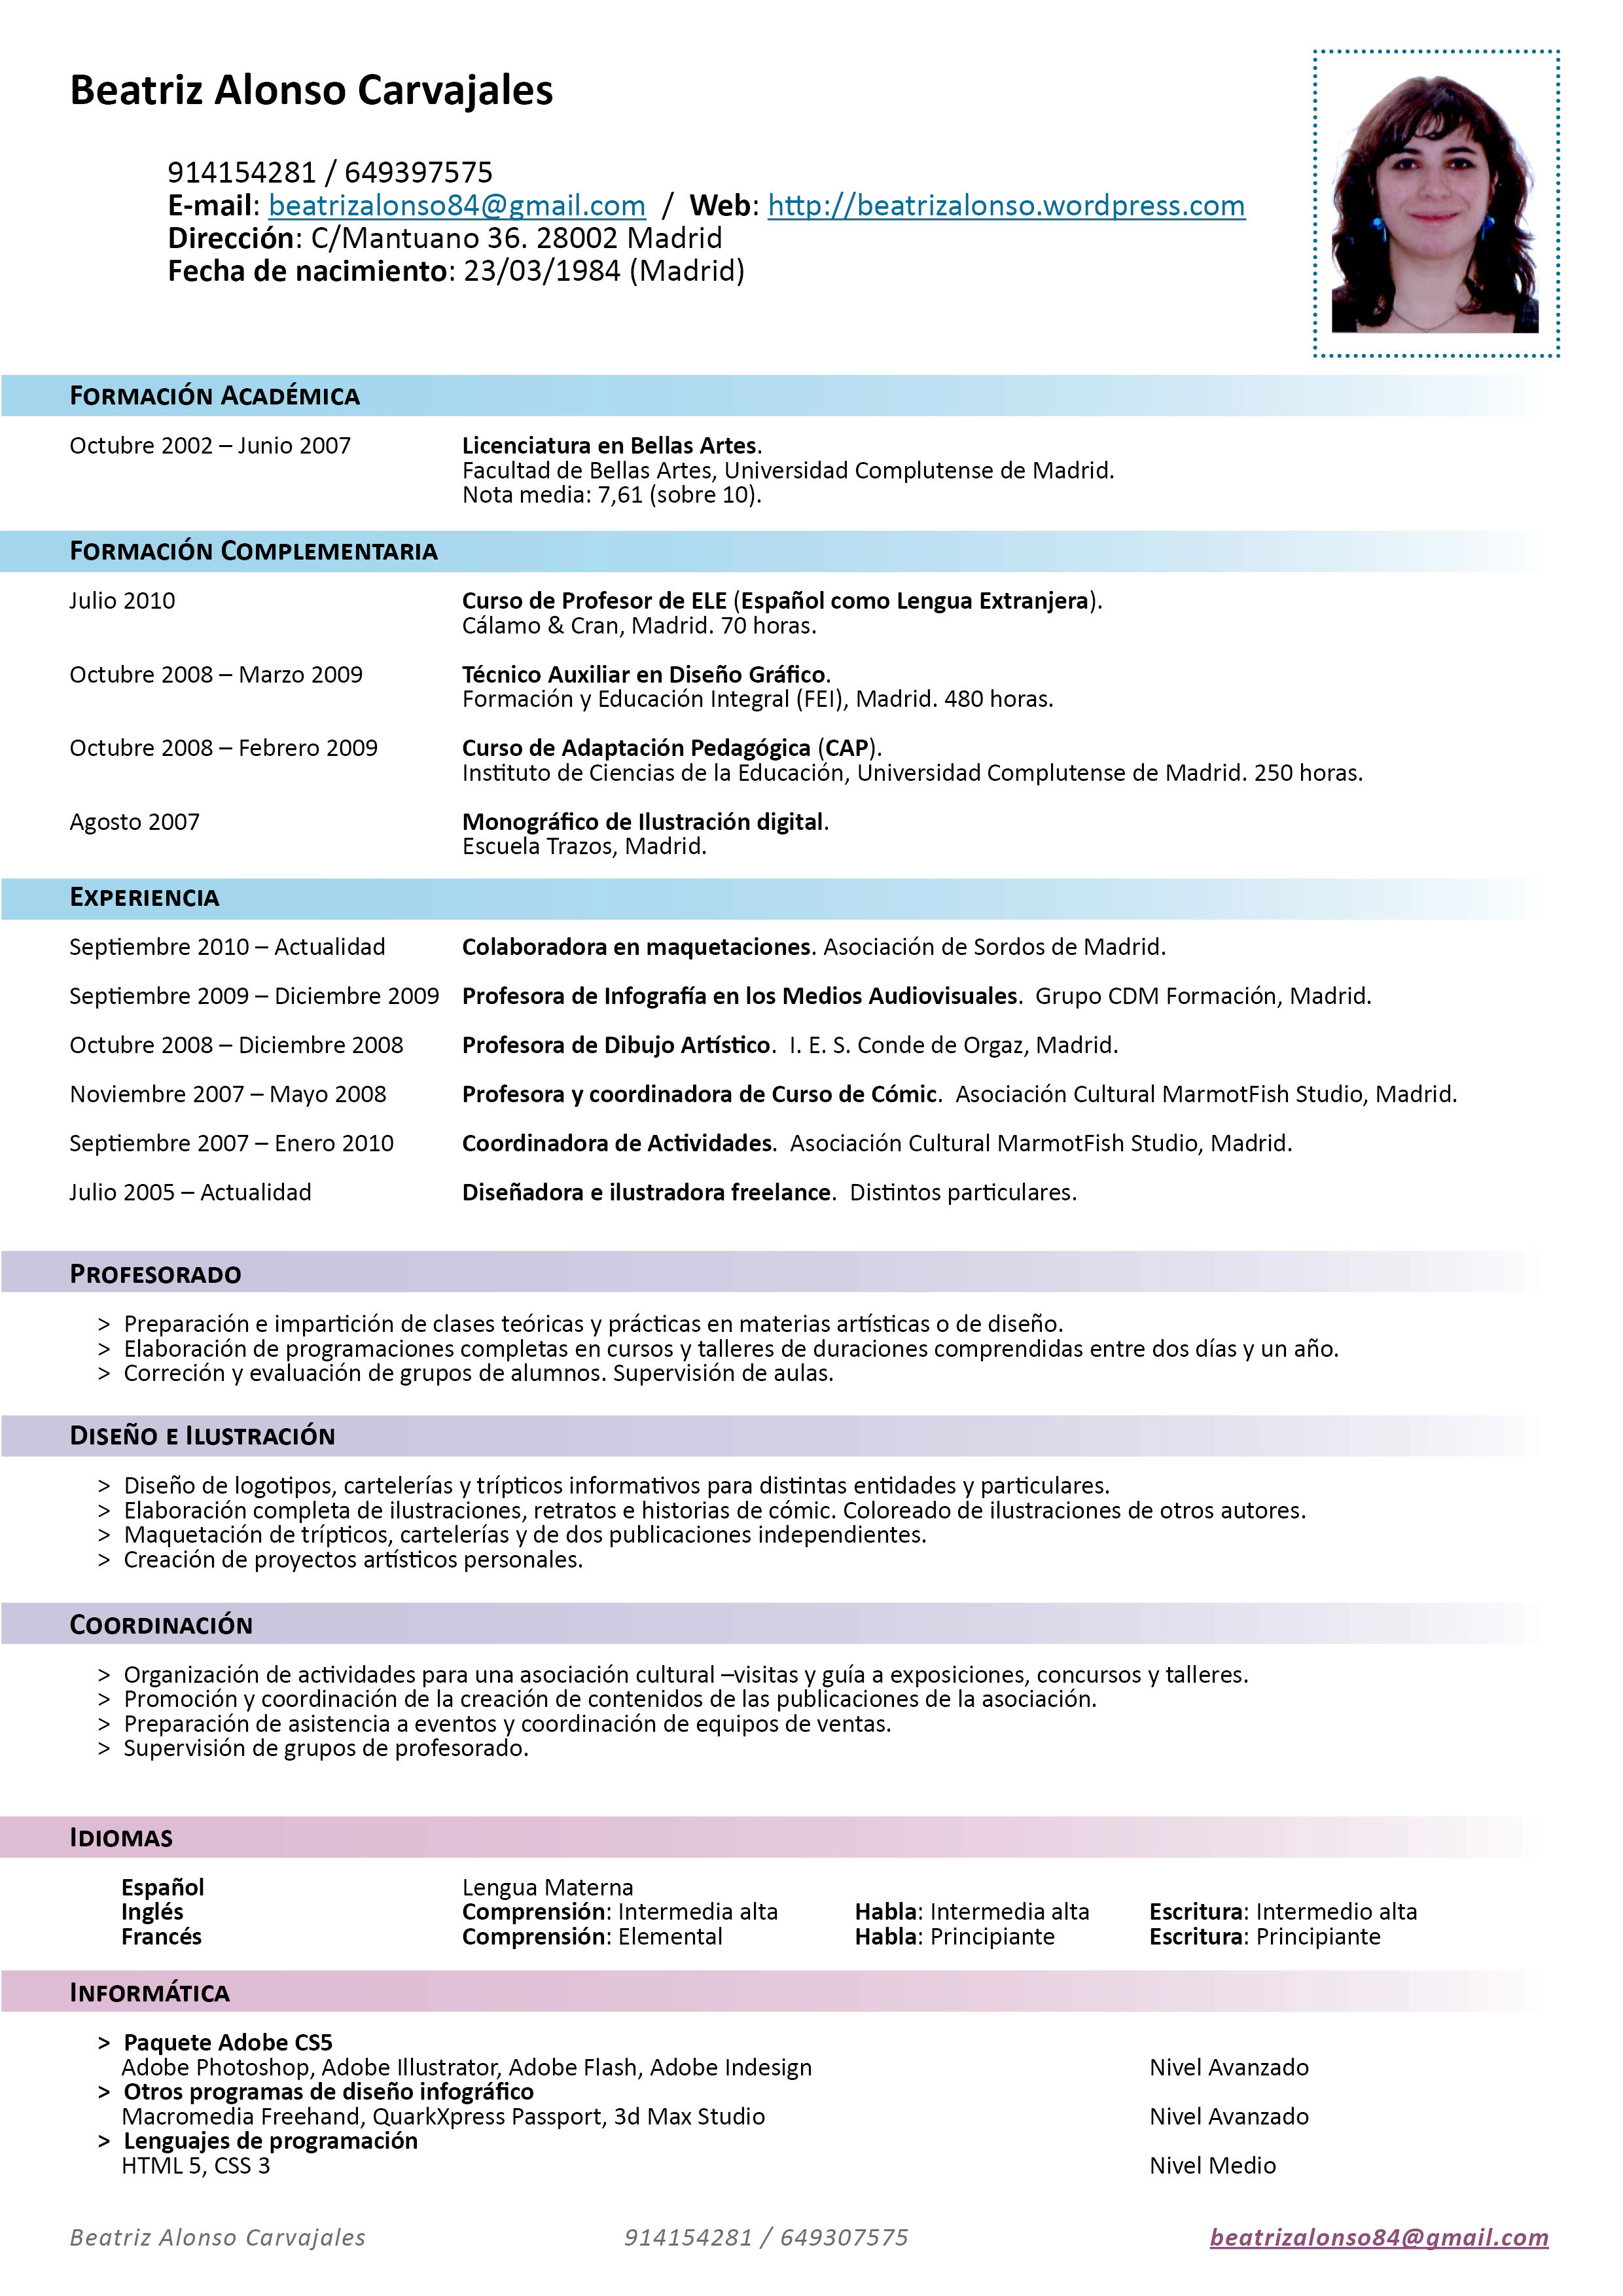 Modelo De Curriculum Vitae Simple  Ejemplos De. Uvic Cover Letter Tips. Cover Letter For Administrative Assistant In A Bank. Application For Employment Ghana. Application For Employment How To Fill It Out. Resume Example Lawyer. Definition Of Resume Letter. Resume Sample Volunteer. Unique Resume Summary